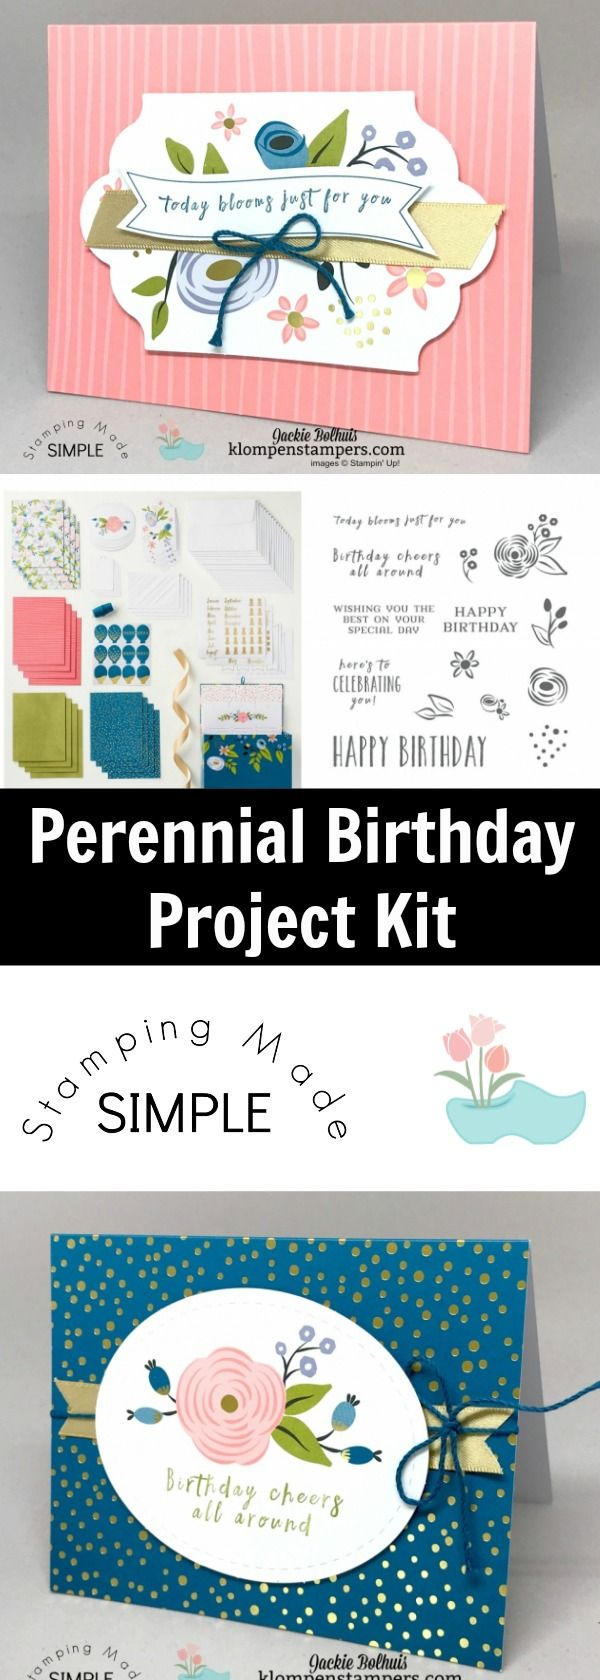 106 Best Cards Su Perennial Birthday Images On Pinterest Bday